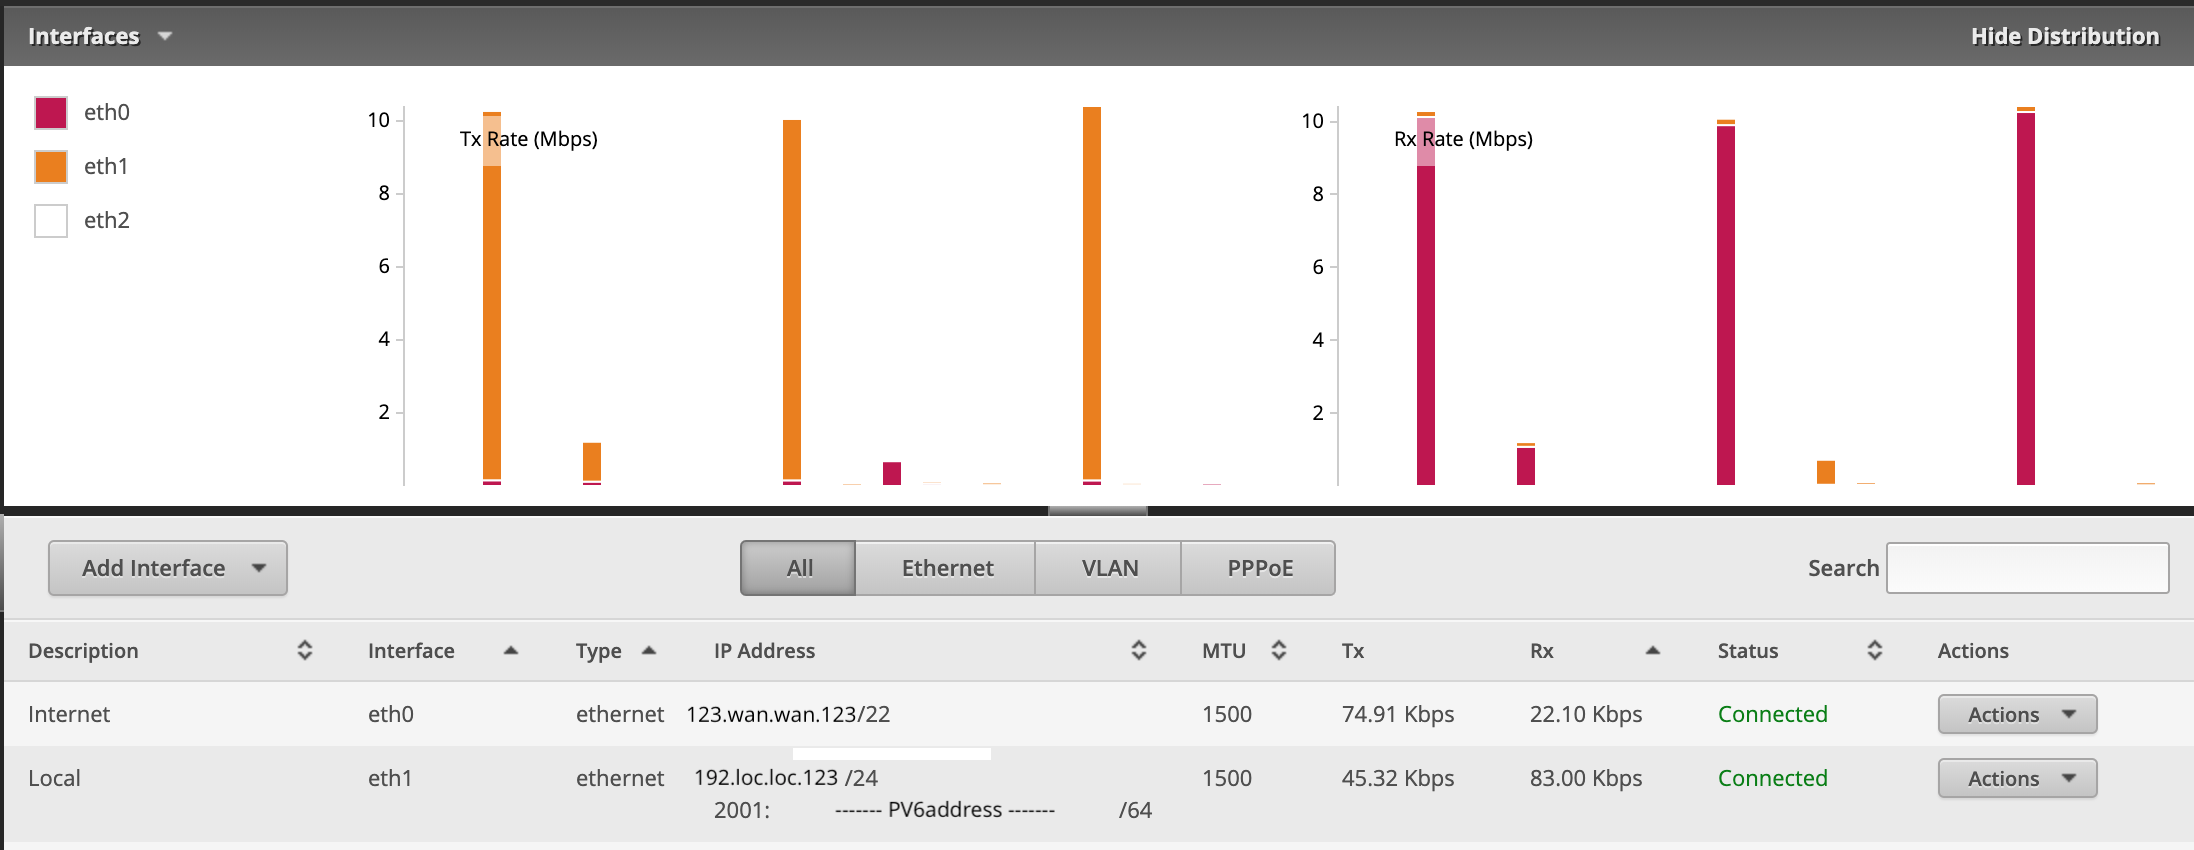 EdgeRouter dashboard with IPv6 configured